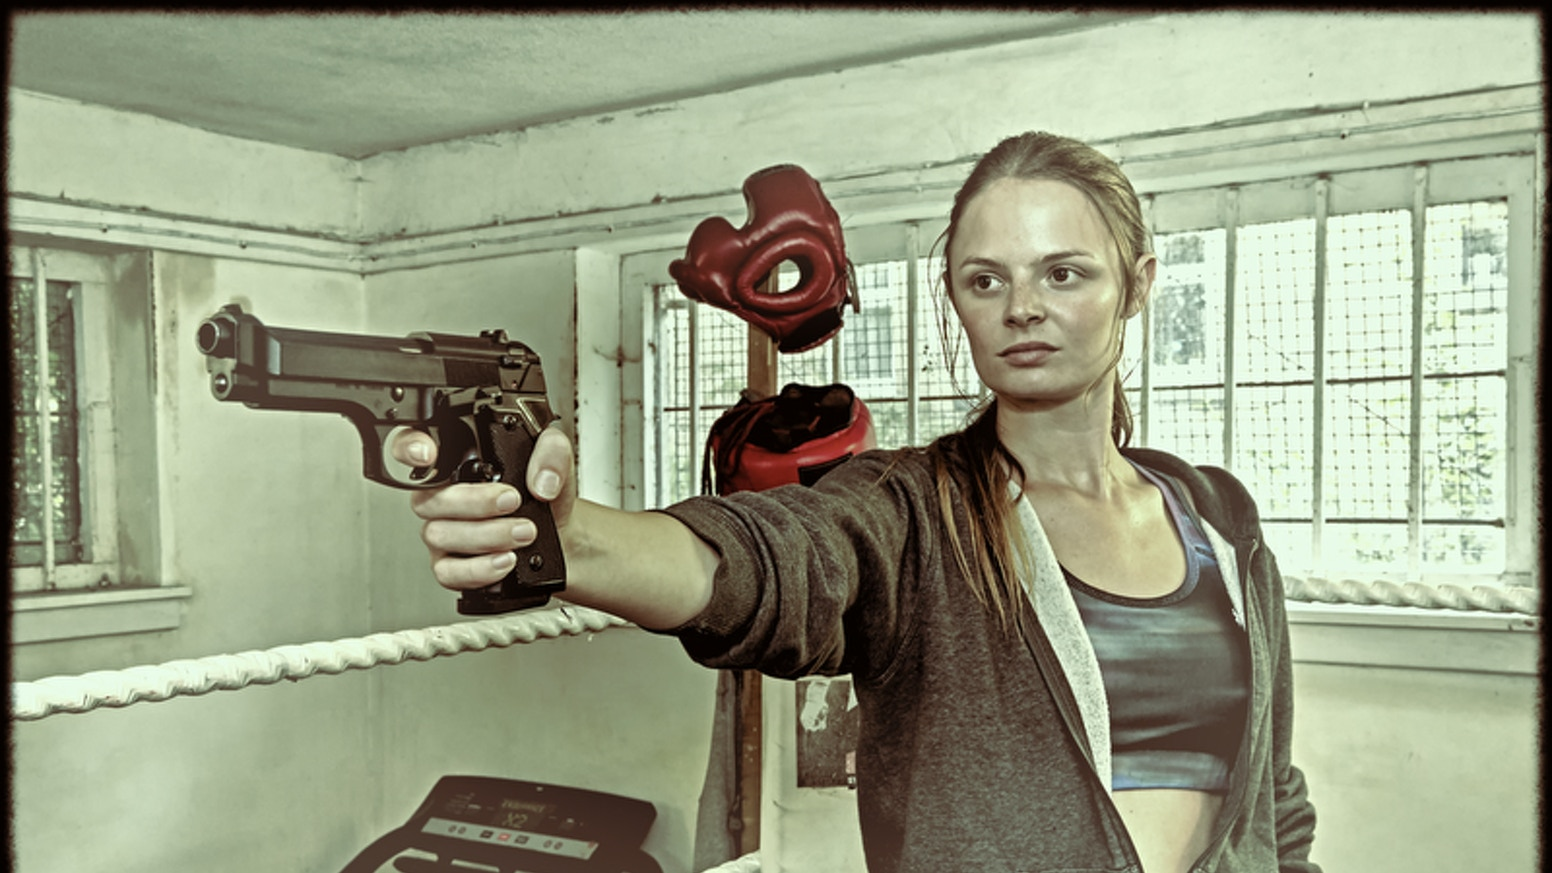 Cops and Monsters - A Monstrous Digital Web Series! by